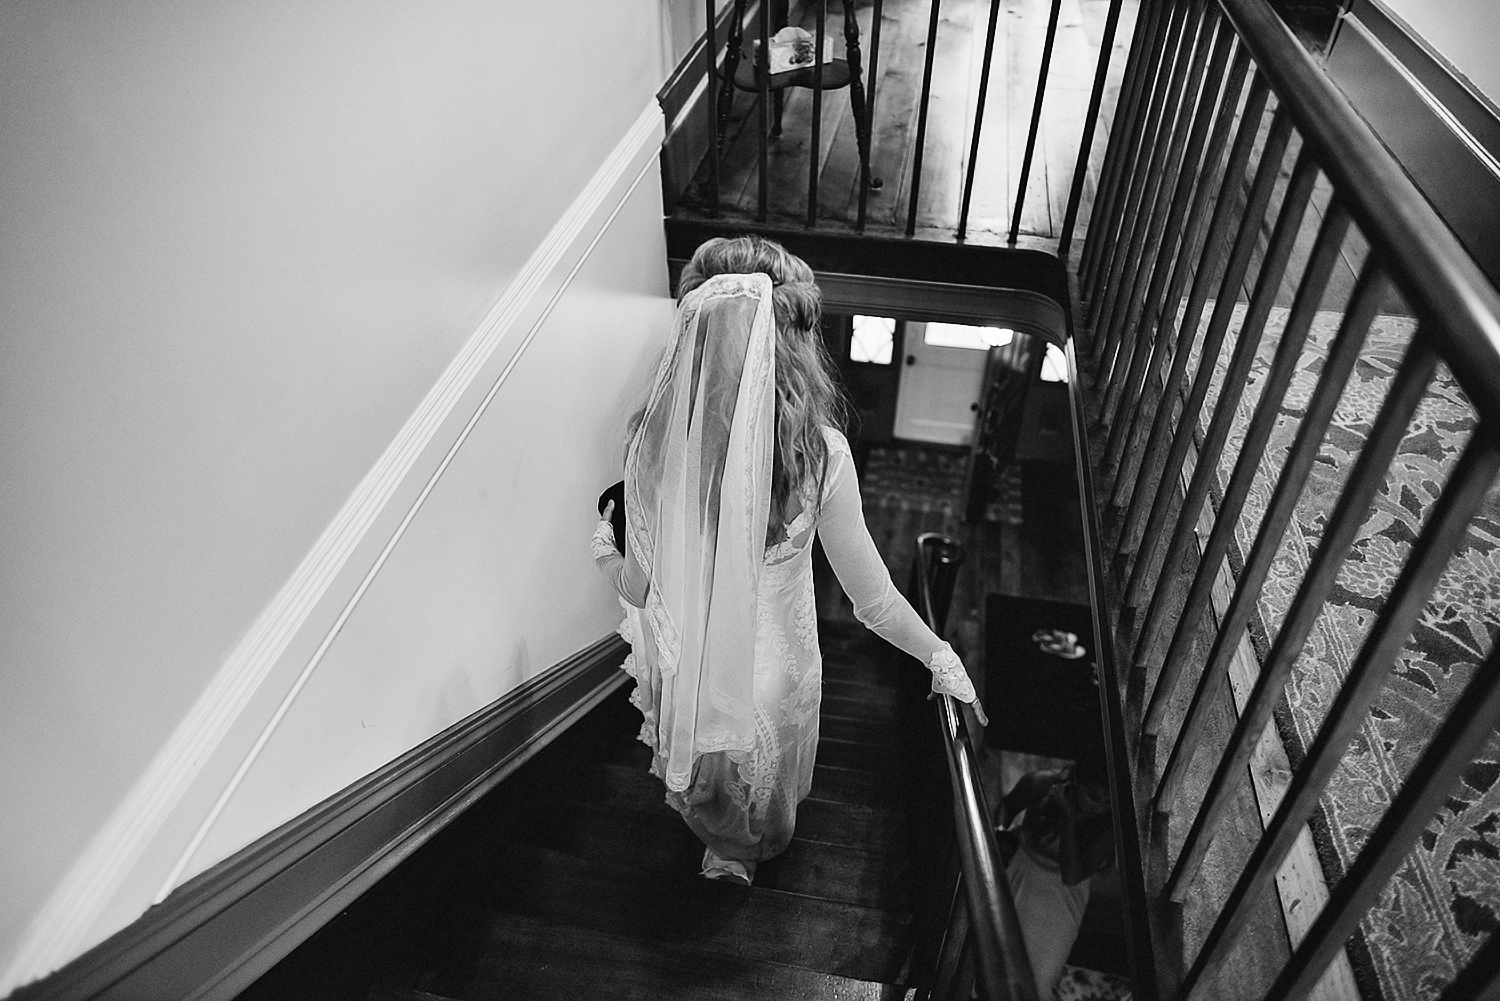 Best-Moody-Documentary-Wedding-Photography-Photojournalism-Vintage-Small-Town-Chapel-Wedding-Toronto-Ontario_Bride-exit-staircase-BW.jpg